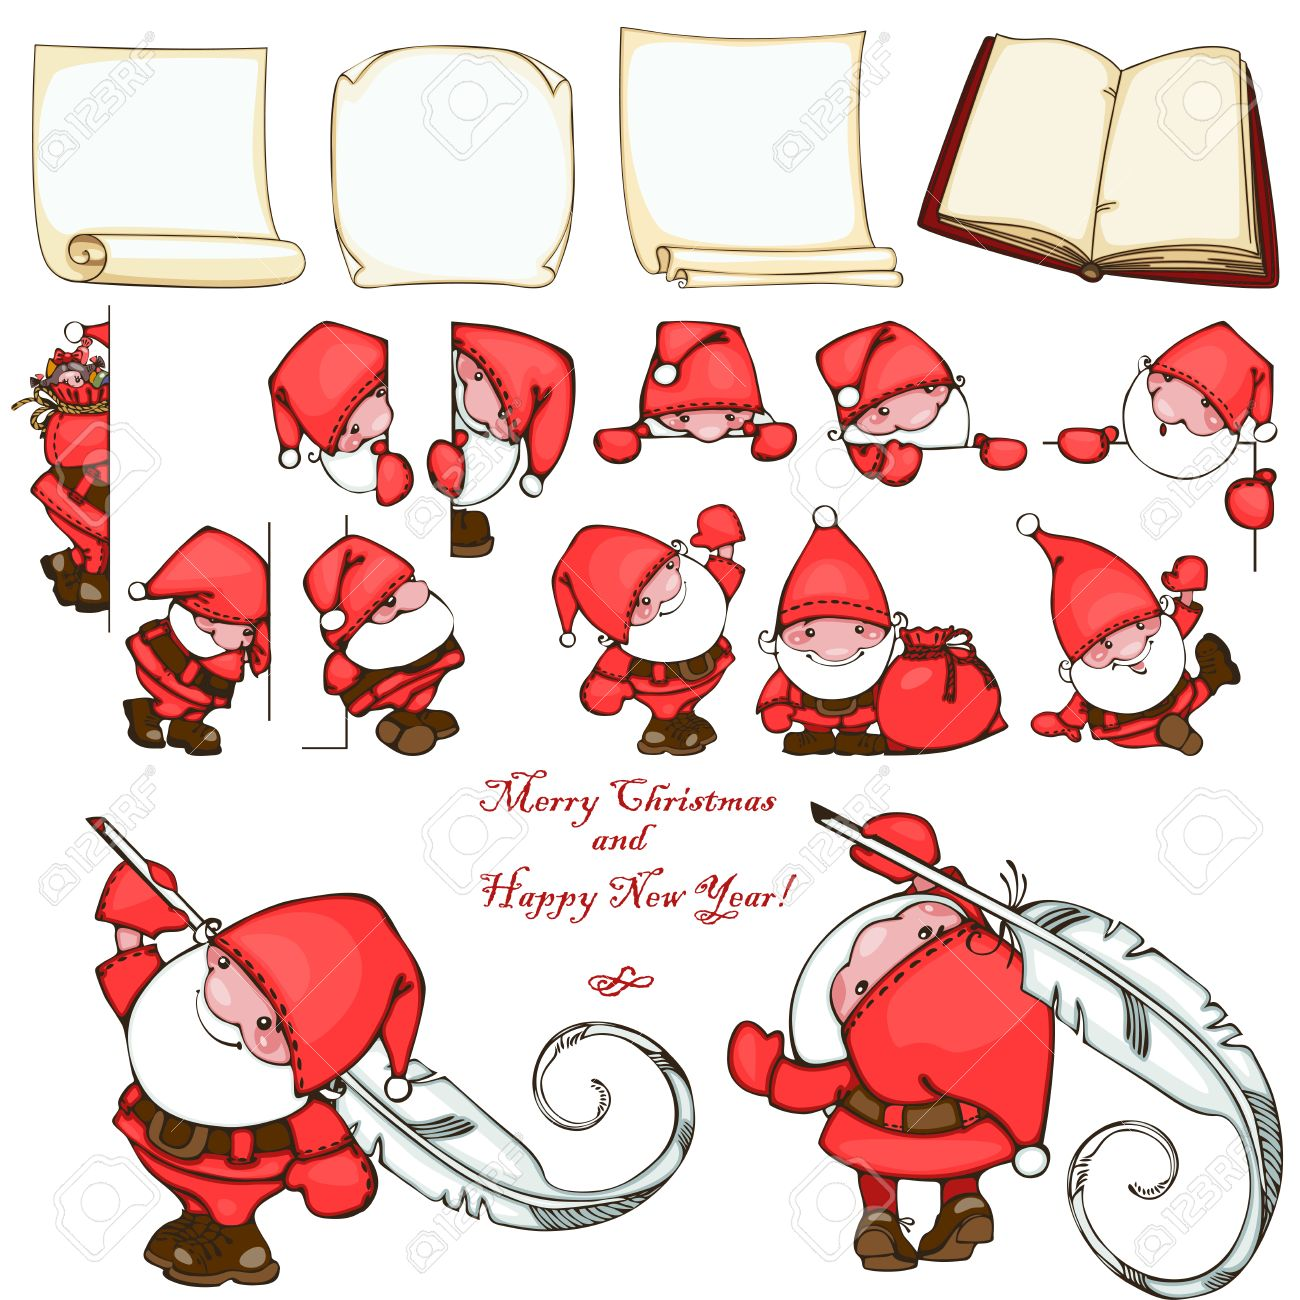 Christmas set with paper blank and Santa Claus. Stock Vector - 23860529